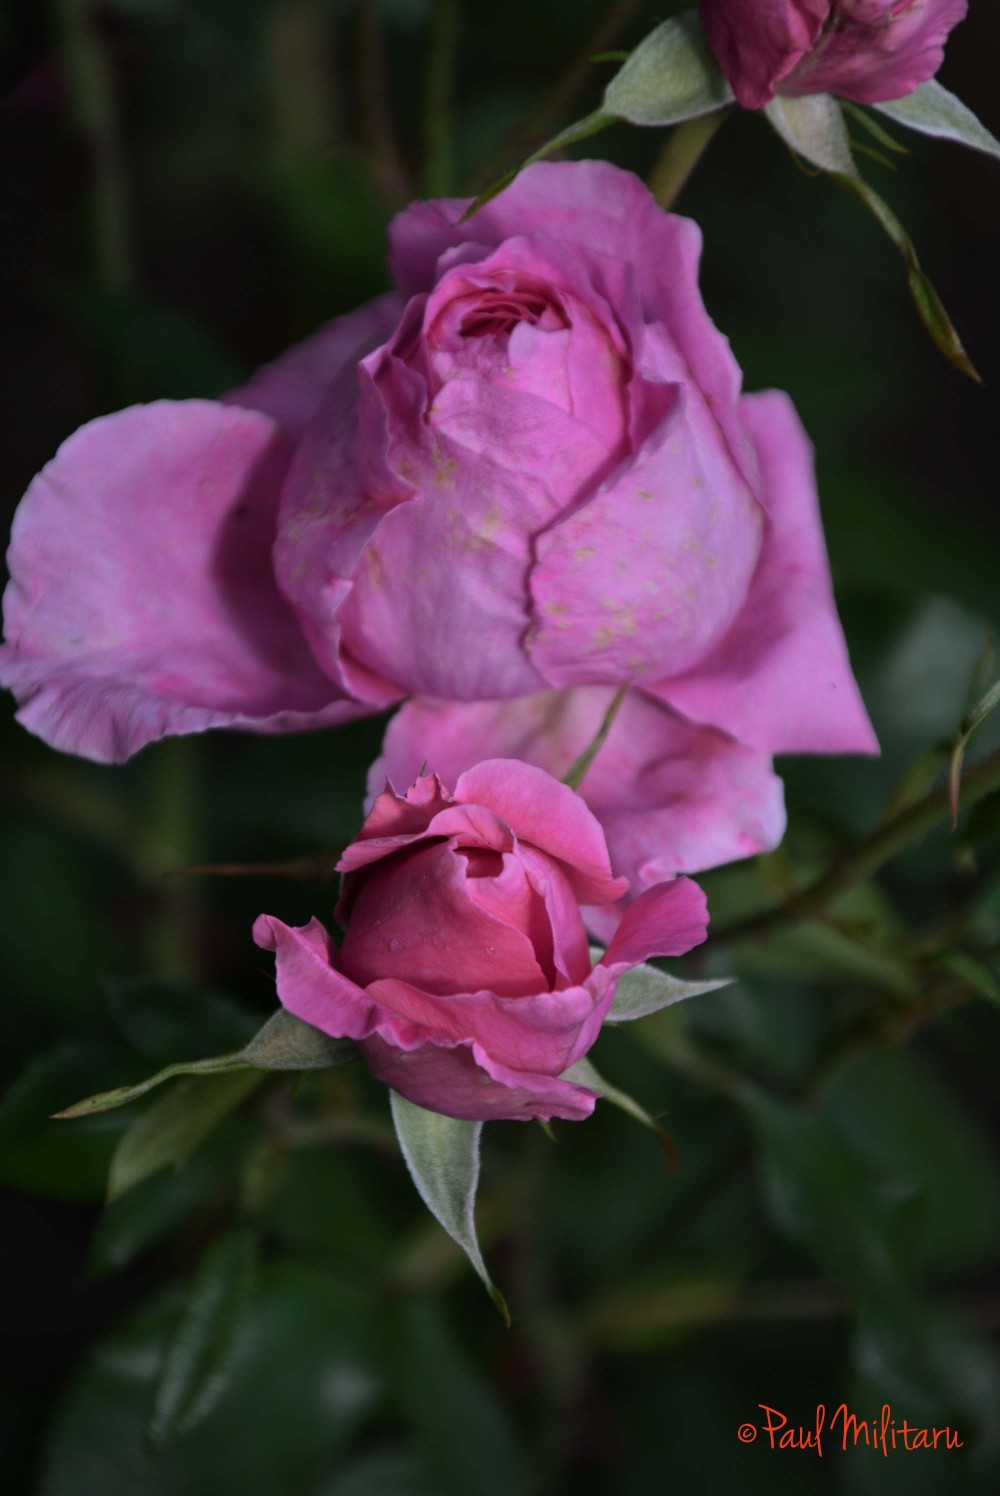 two bud roses